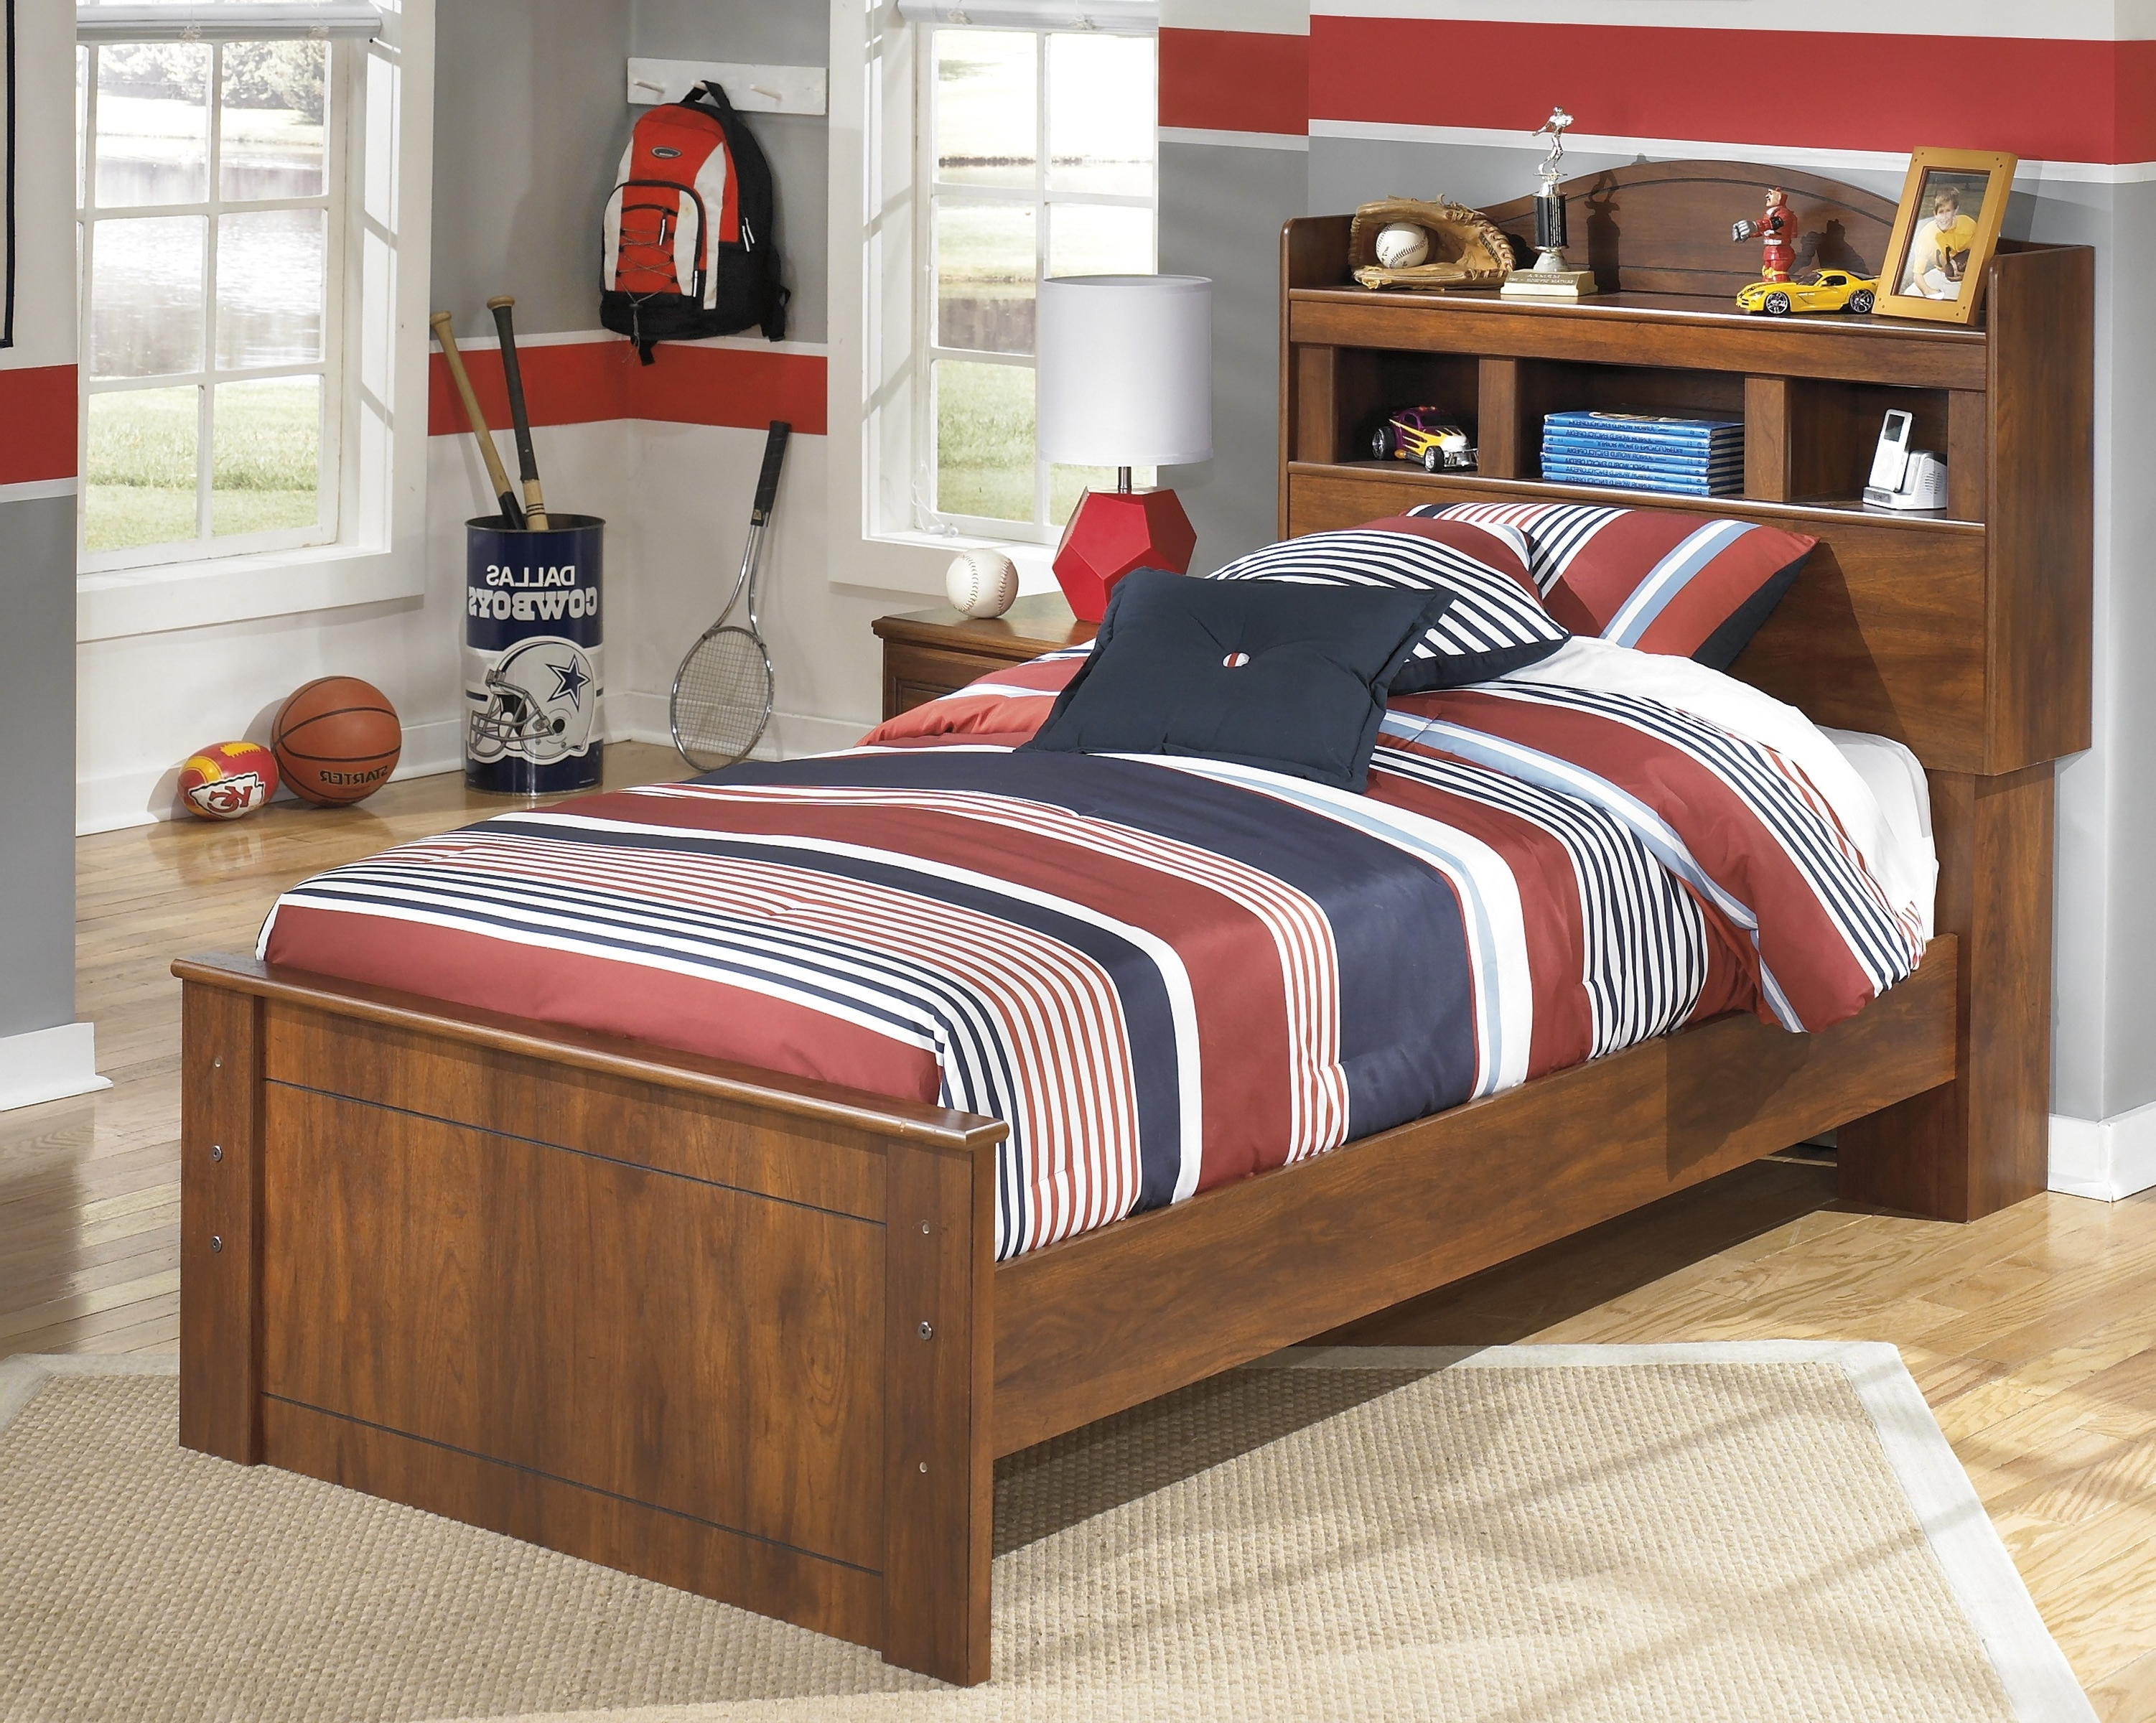 glamorous bed twin kids collection bookcase ideas gallery captains frames pool discovery at for ridgeline size bookcases